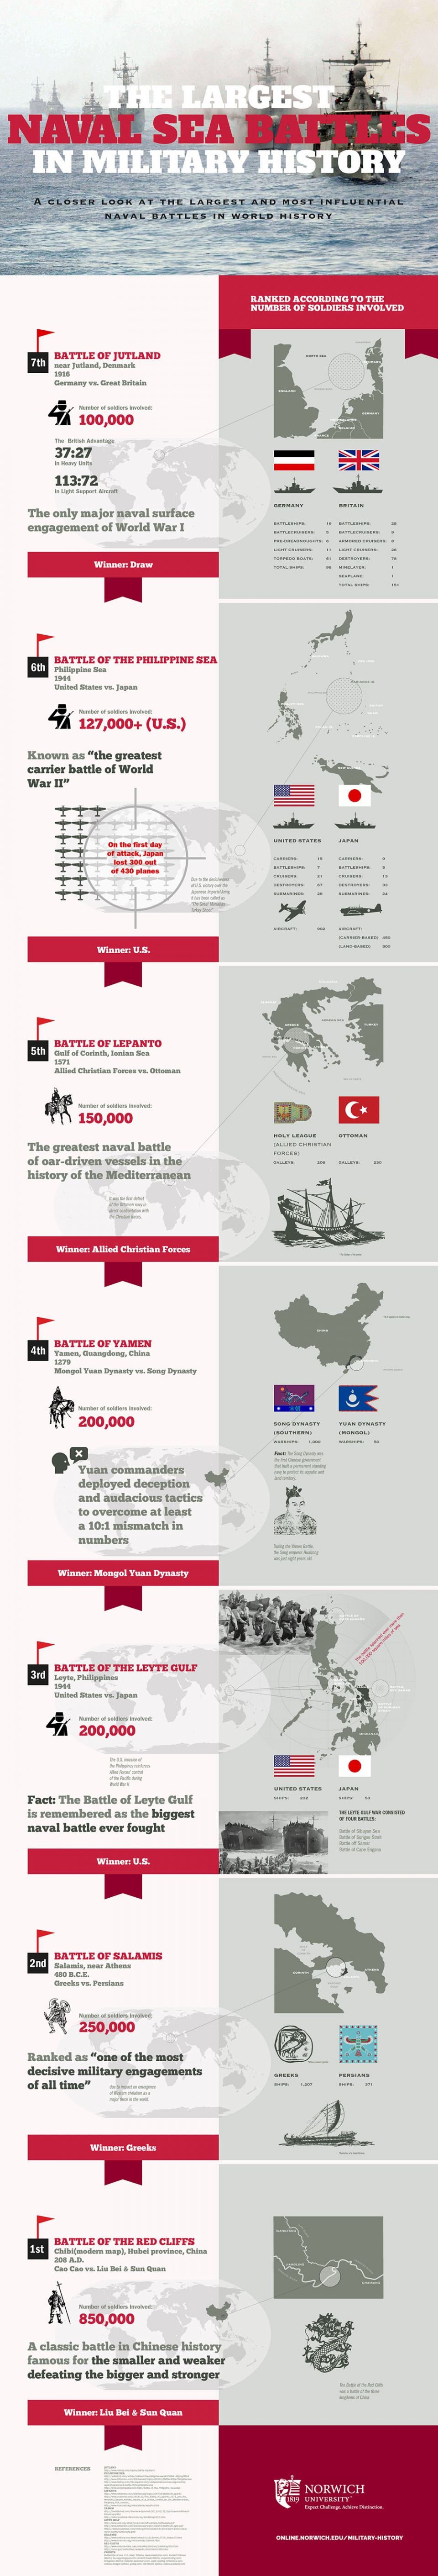 largest naval battles infographic image